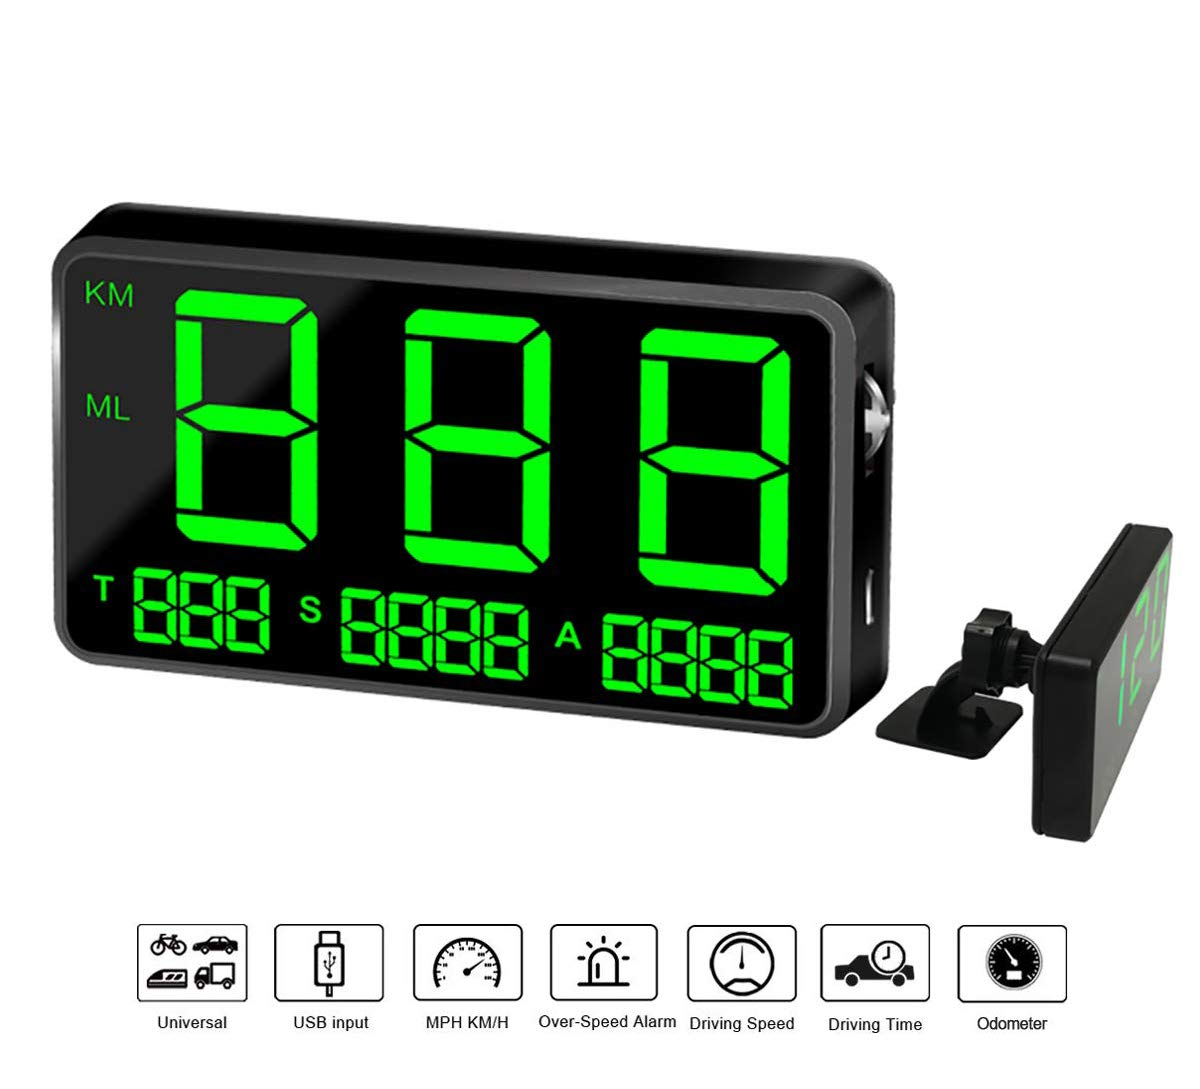 COOLOUS C80 Universal Hud Heads Up Display 4.5inch Large Screen Digital Speedometer Altitude Speed Projector Film Over Speed Warning for Cars & Other Vehicles by COOLOUS